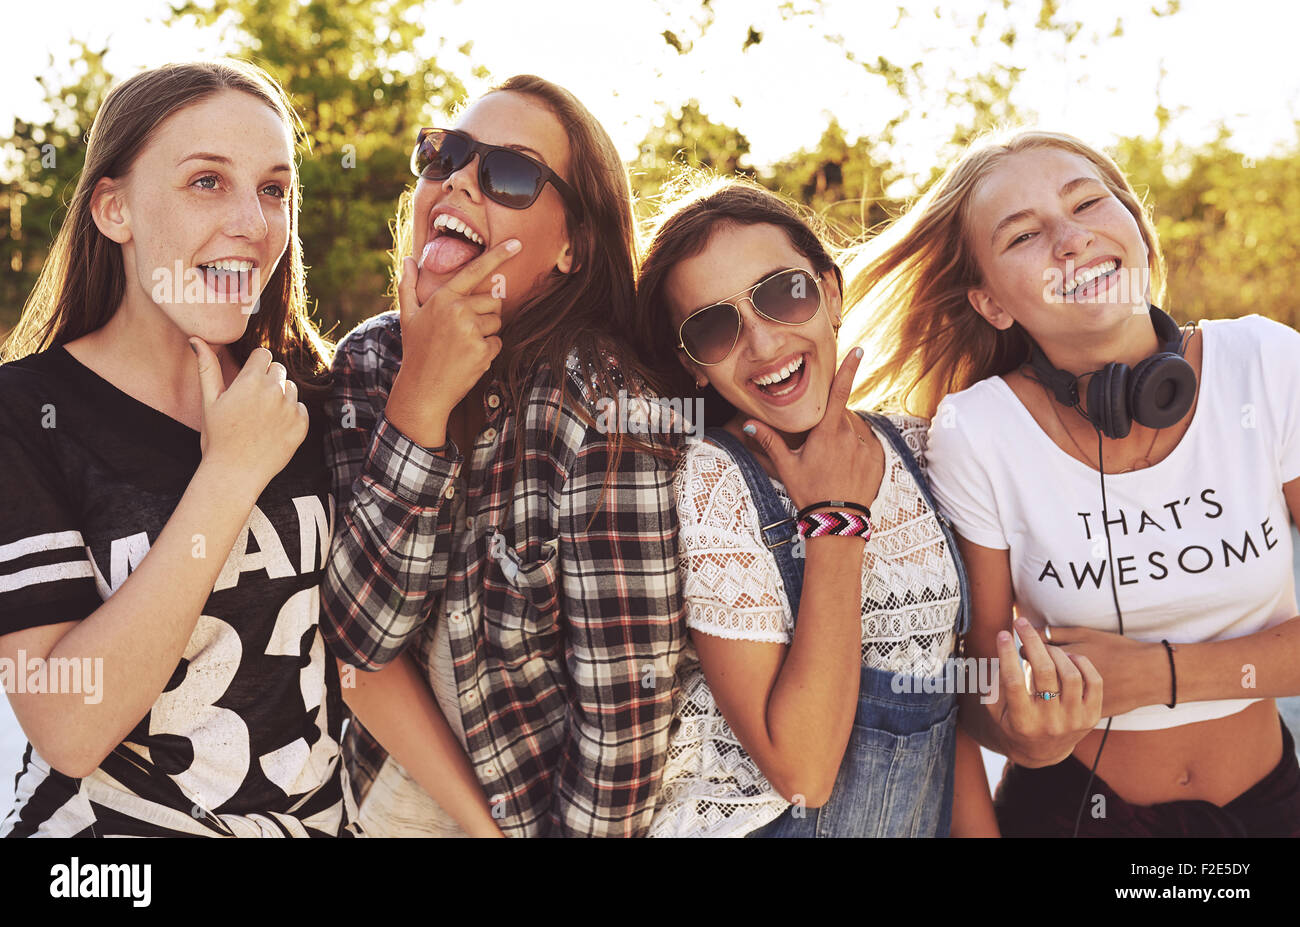 Group of girls making fun expressions a the camera, outside in a park - Stock Image